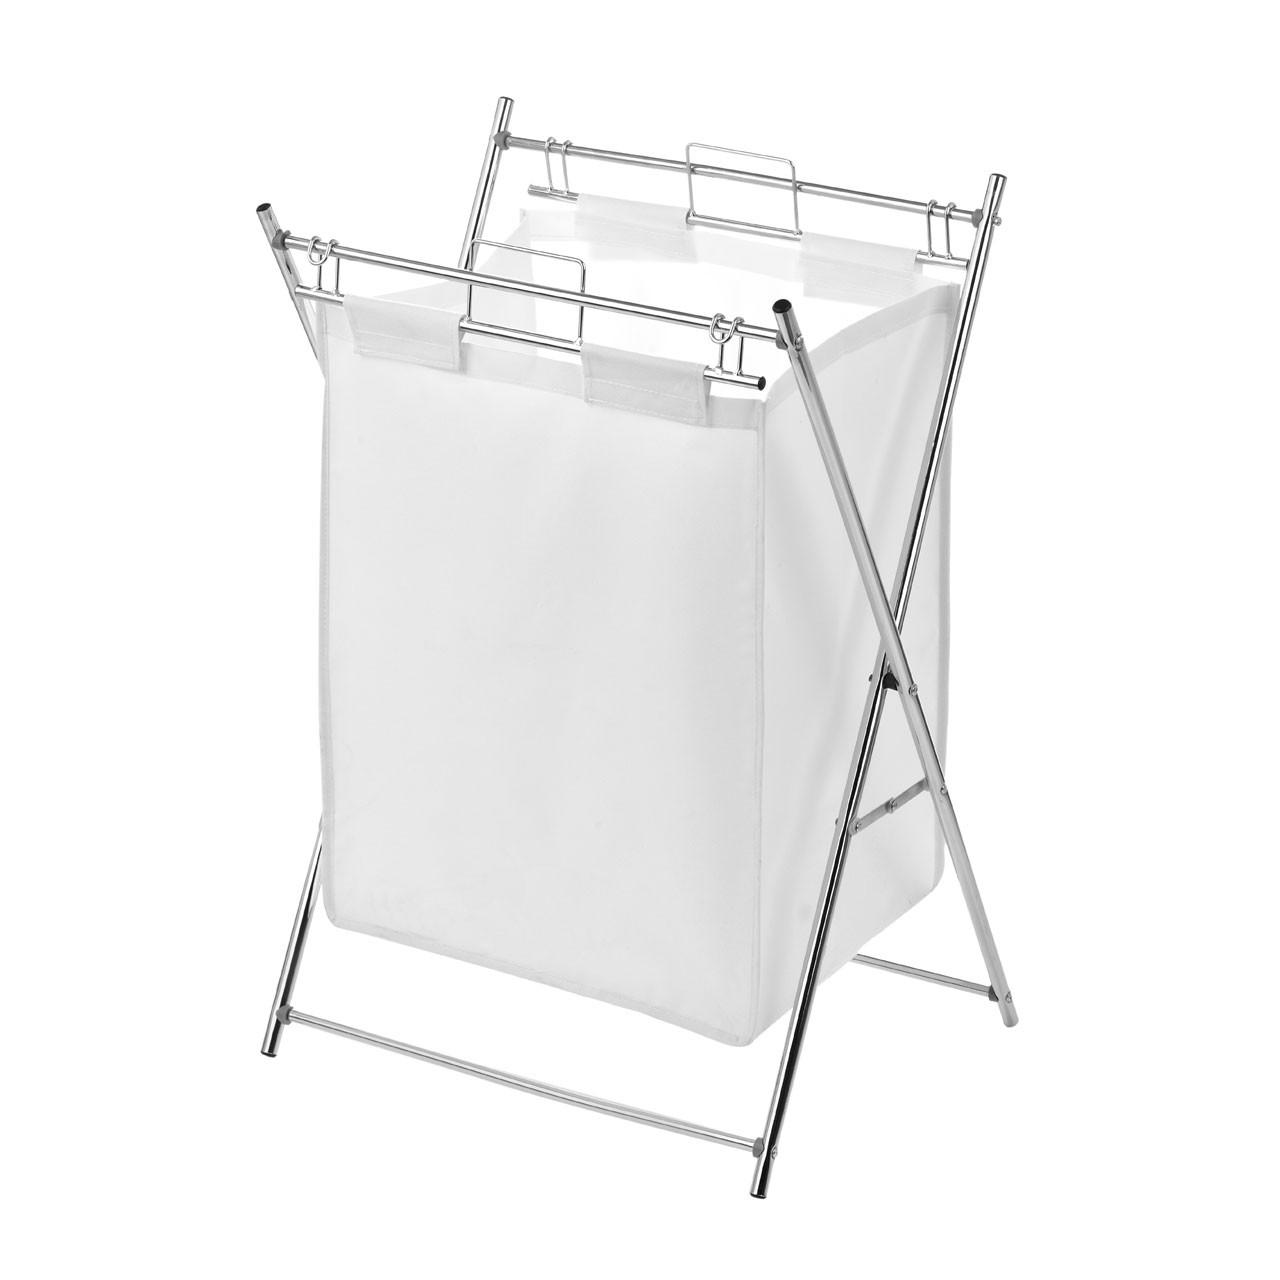 Laundry Bag with Chrome Frame - White